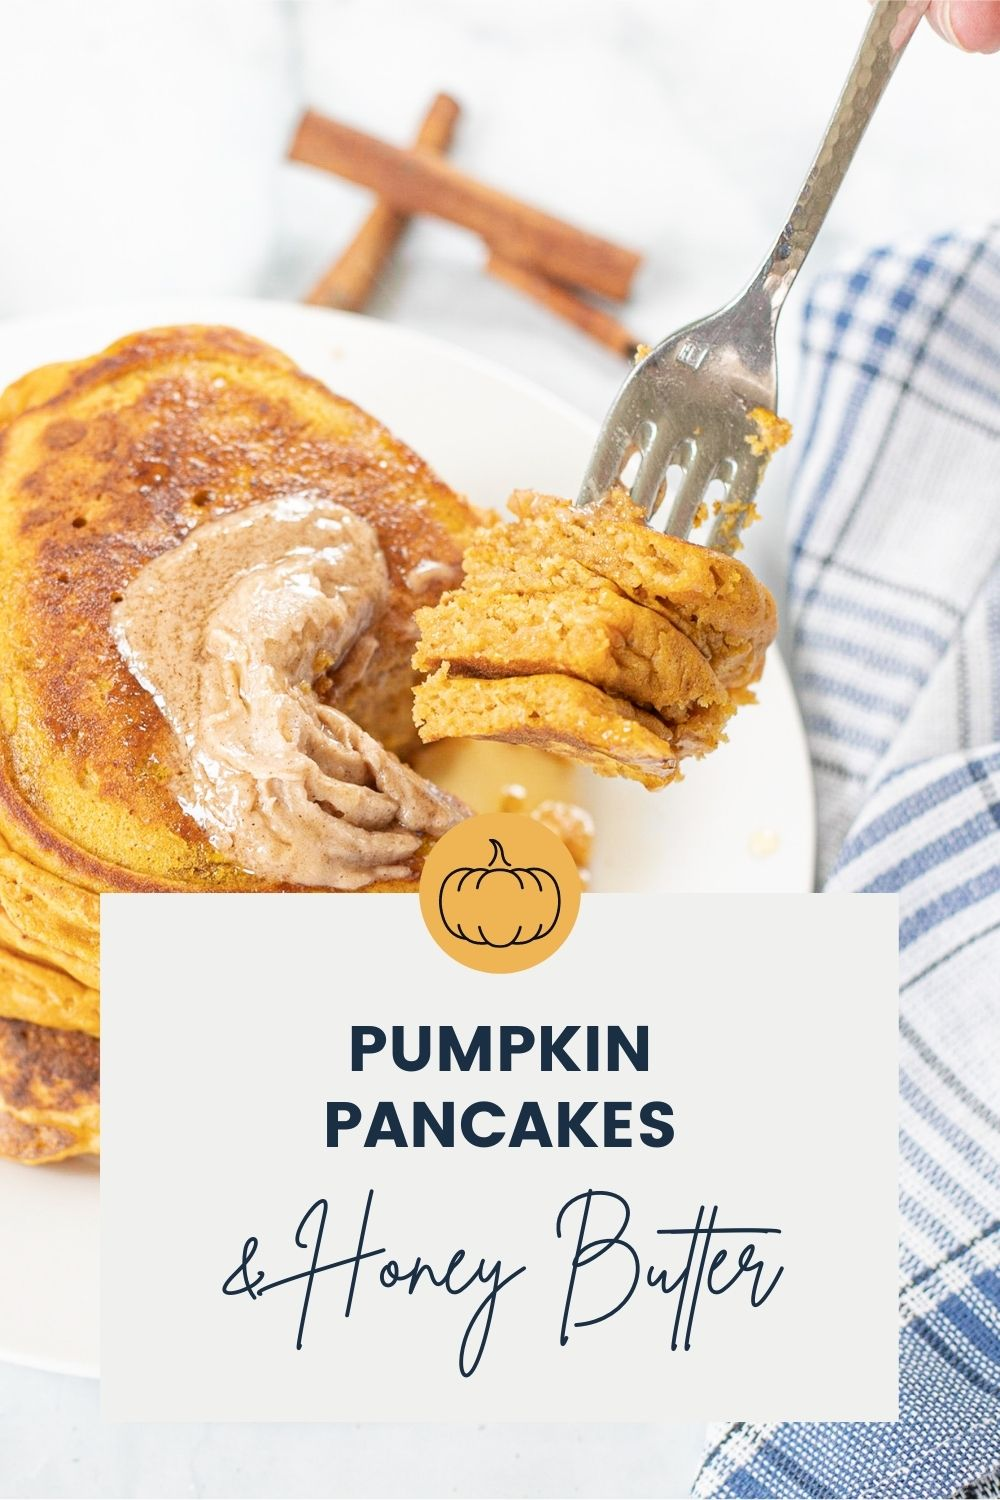 Forkfull of pancakes over a plate of pumpkin pancakes.